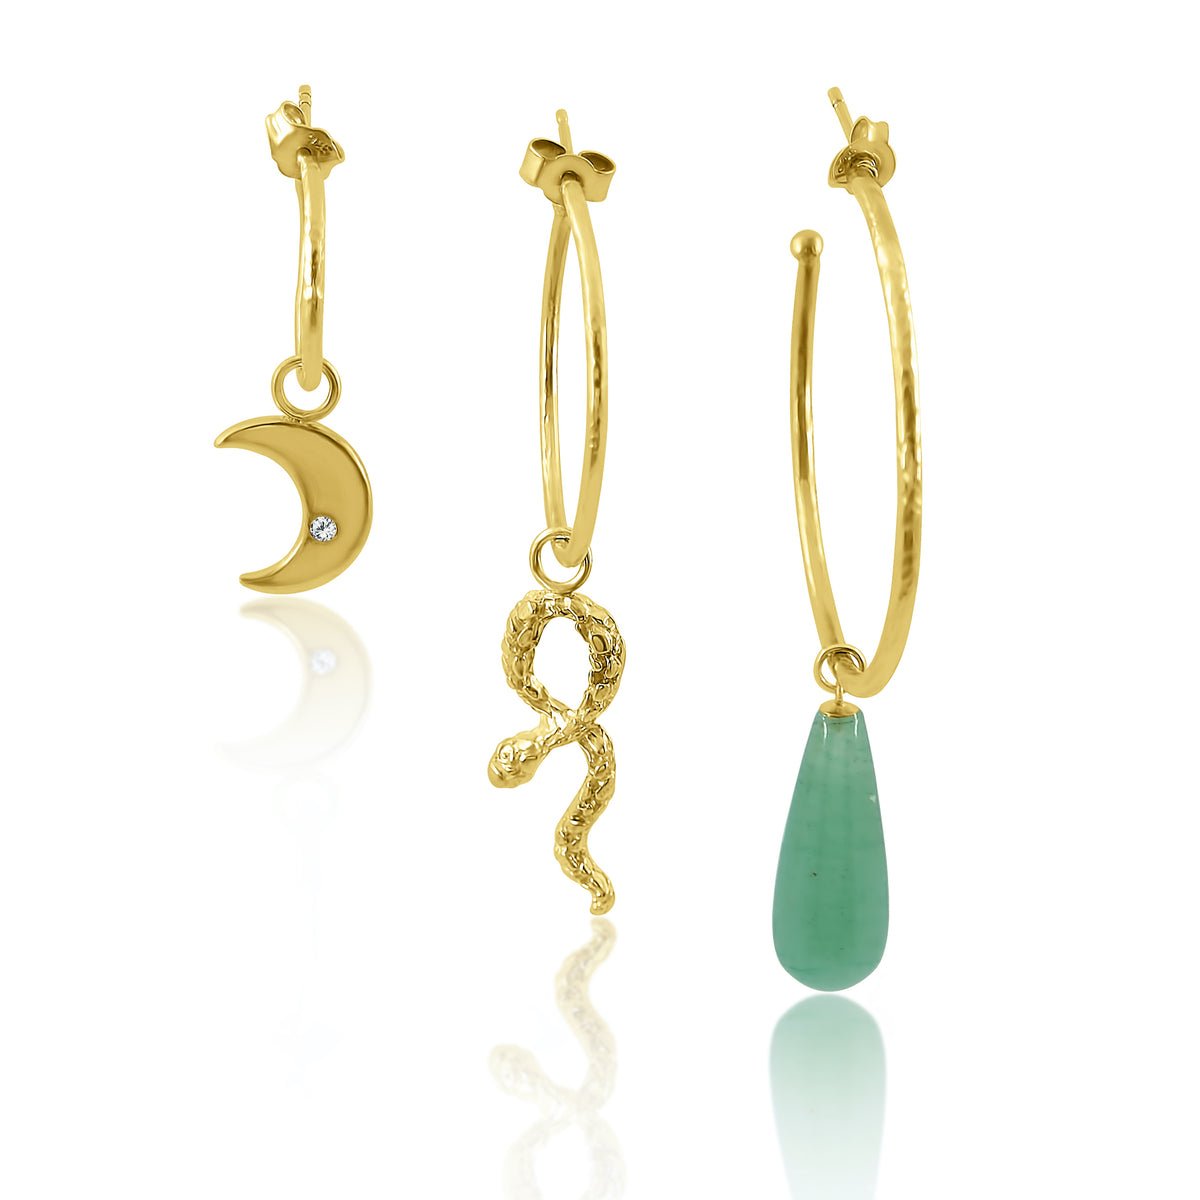 gold textured hoops with skull, moon and gemstone charms